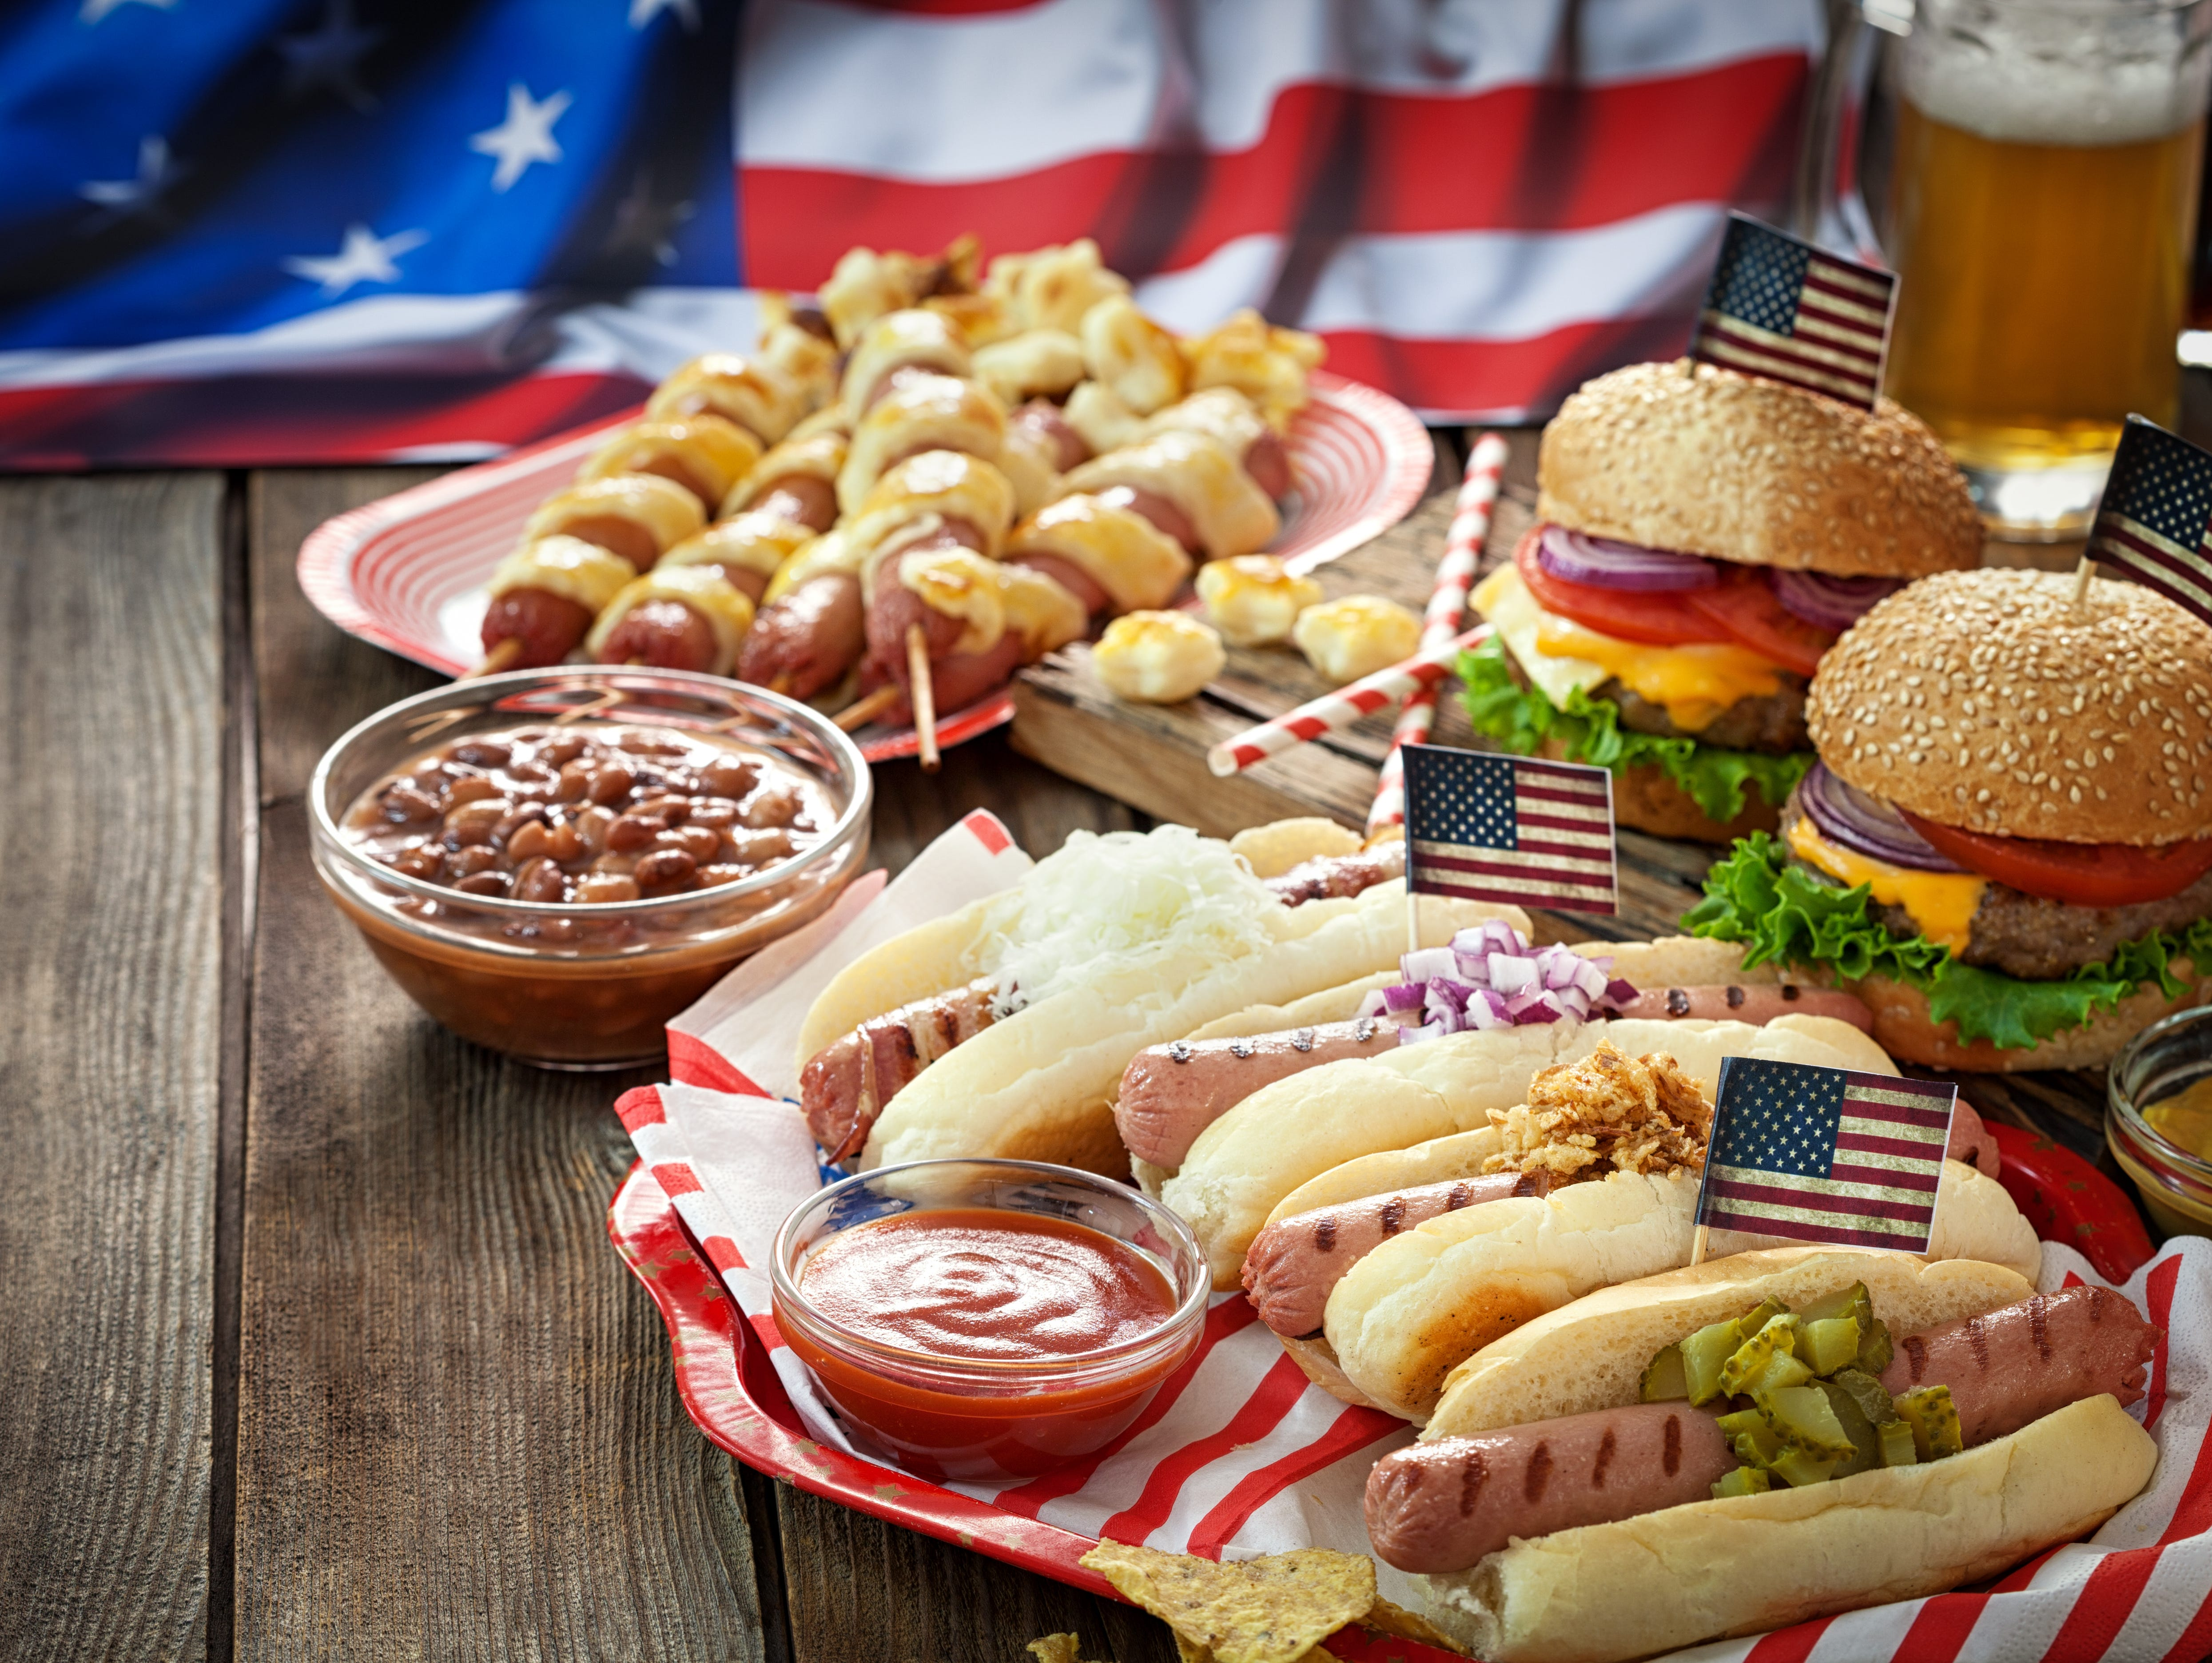 Get ready for your 4th of July fun! Enter to win a $100 Kroger Gift Card. Now through June 29th.